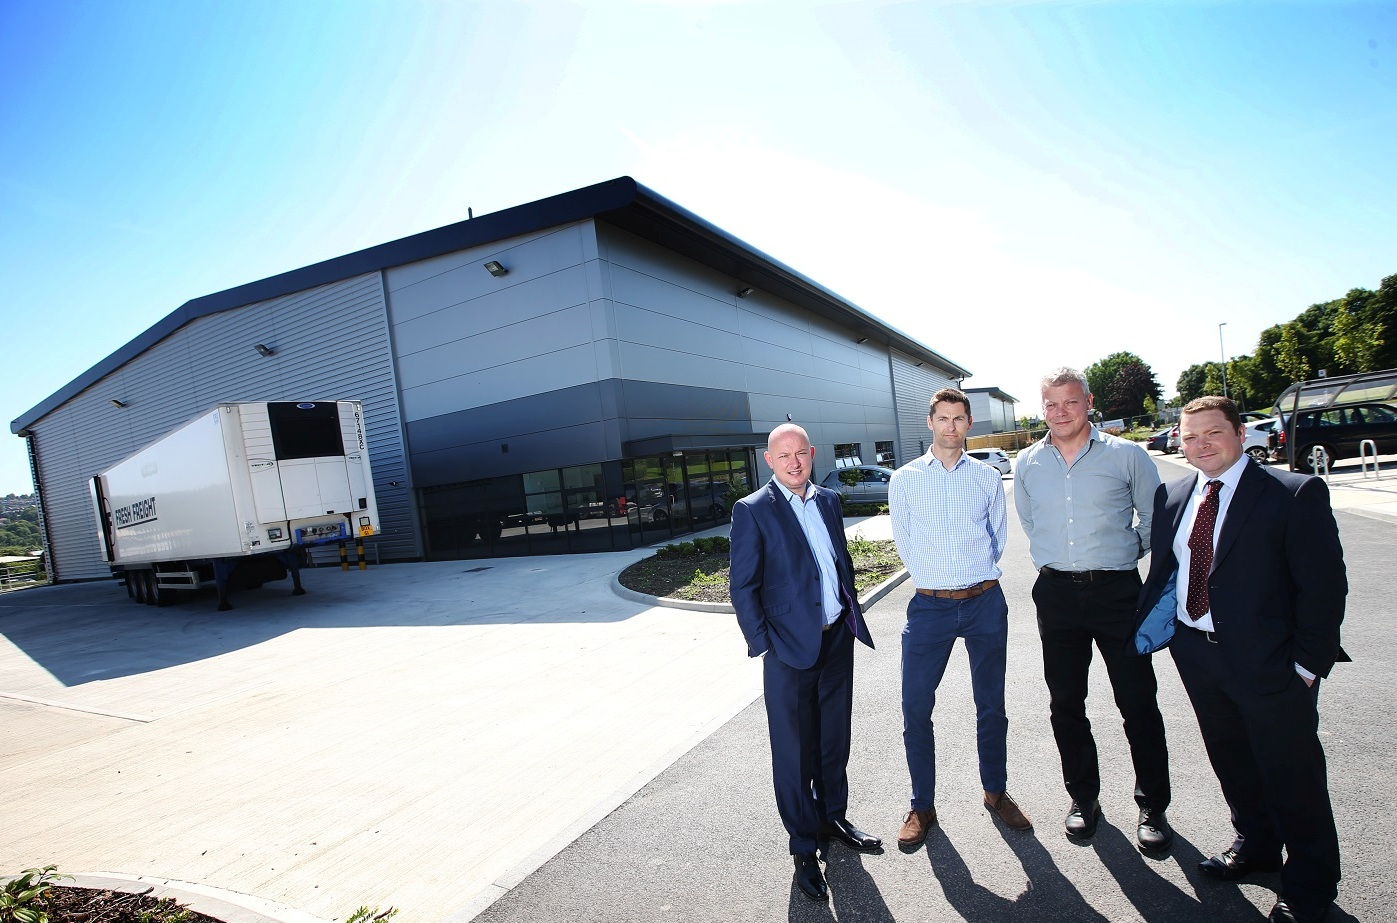 Speculative Team Valley scheme secures first tenant